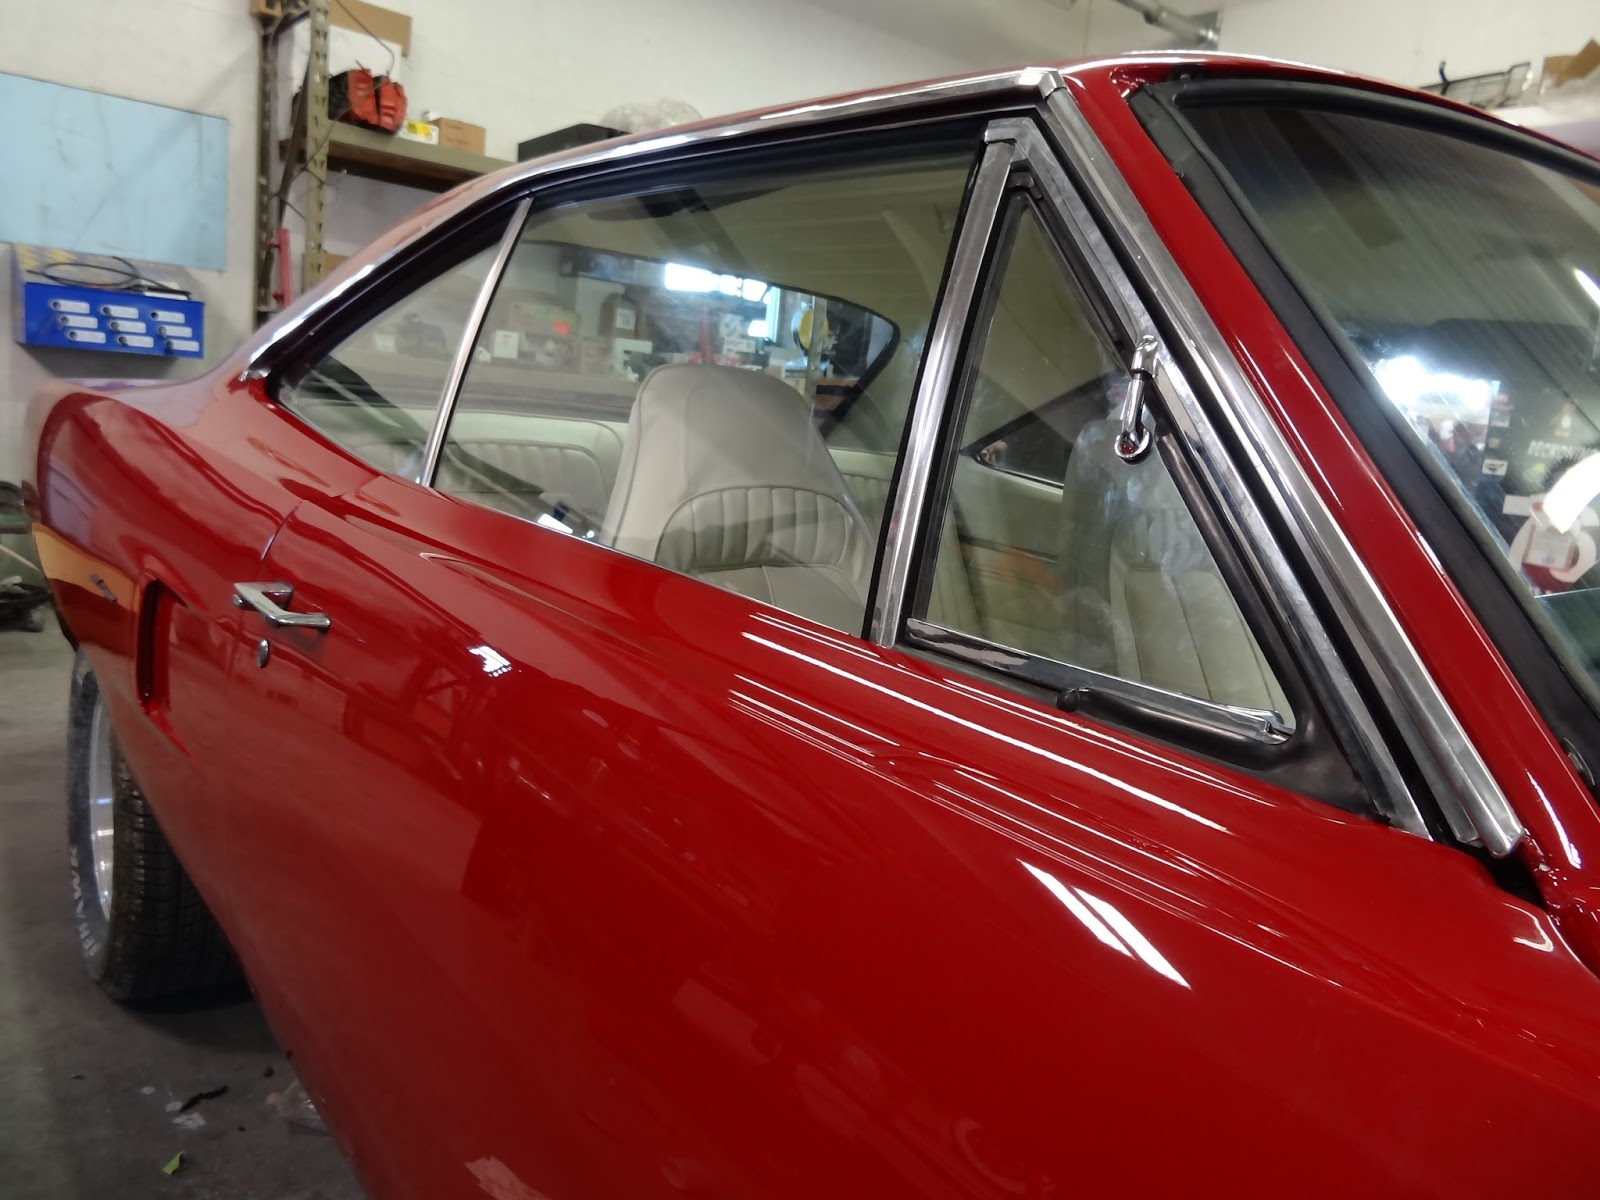 Driven Restorations Mopar Window Repair Replacements 1970 B Body 1968 Plymouth Road Runner Wiring Diagram Door Glass Installation Completed On The And All Gaskets Have Been Fitted For Proper Sealing When Closed